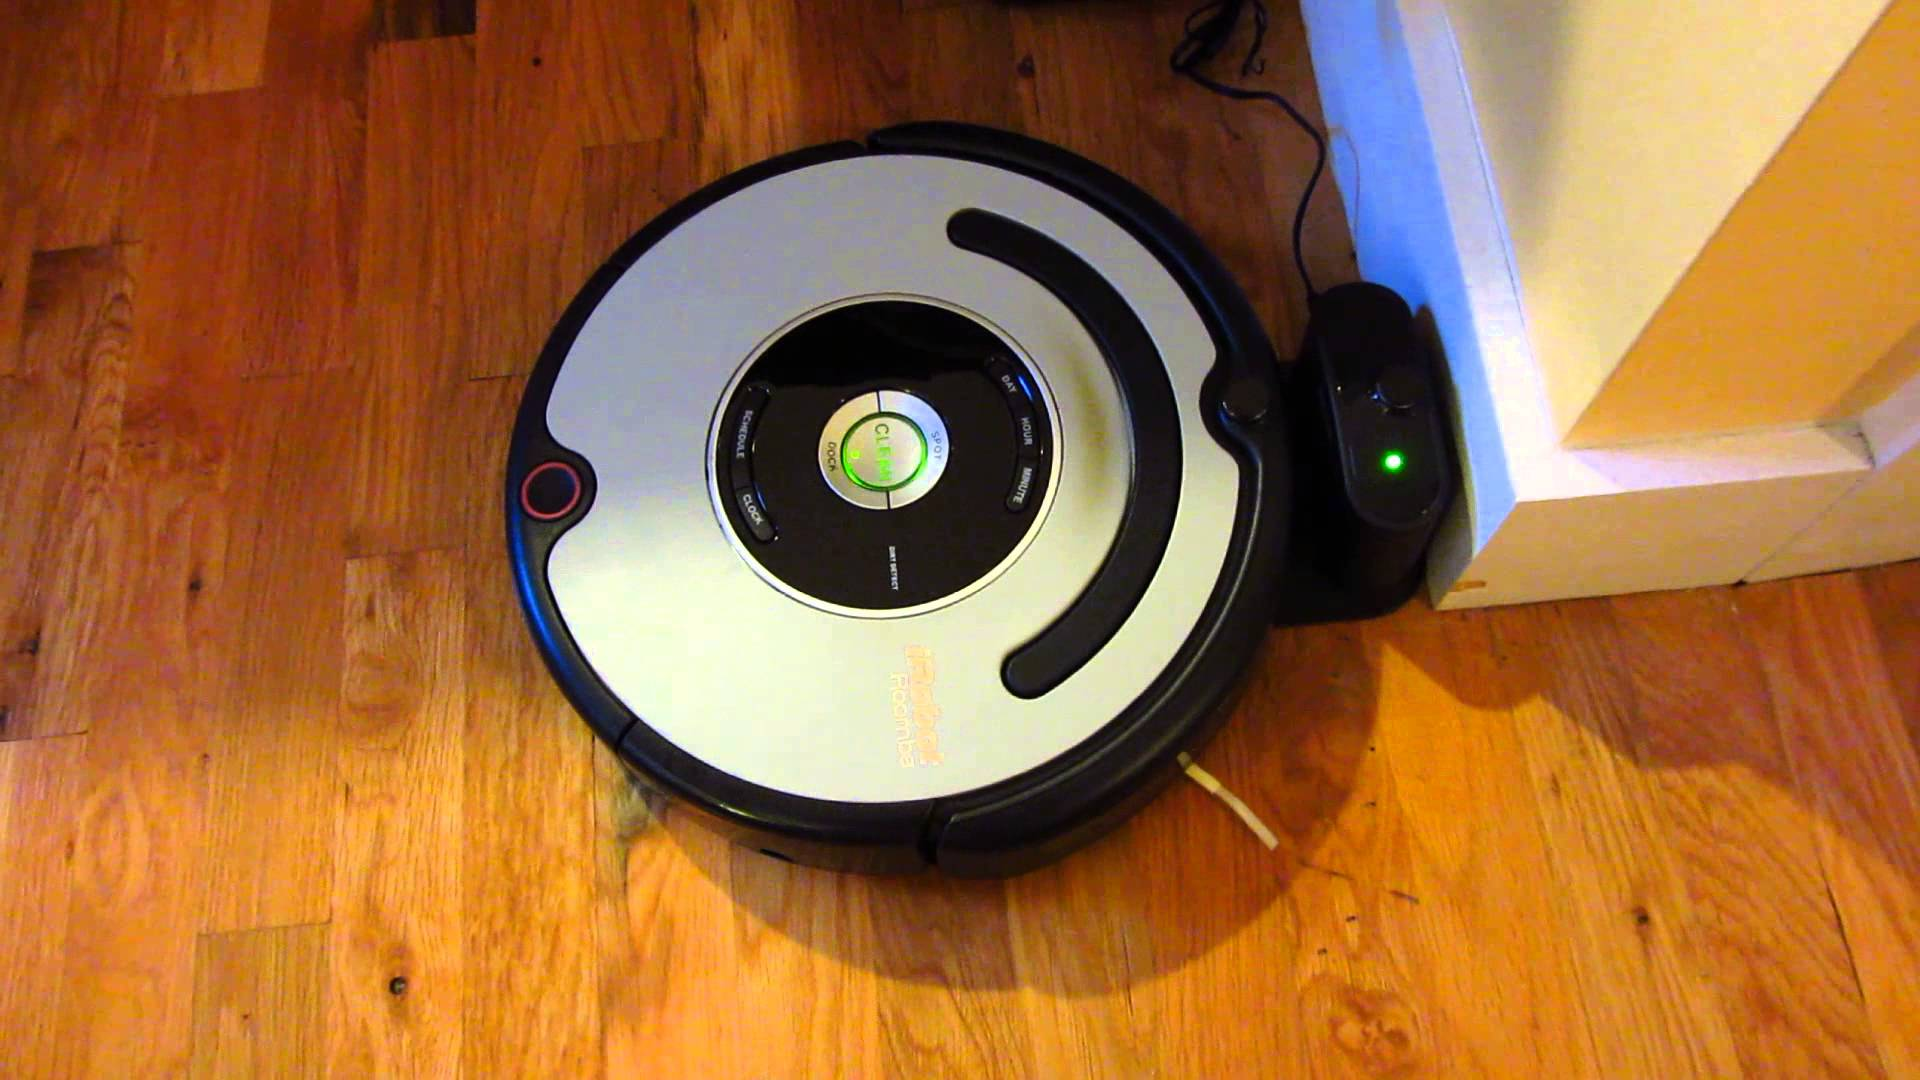 station recharge du Roomba d'iRobot